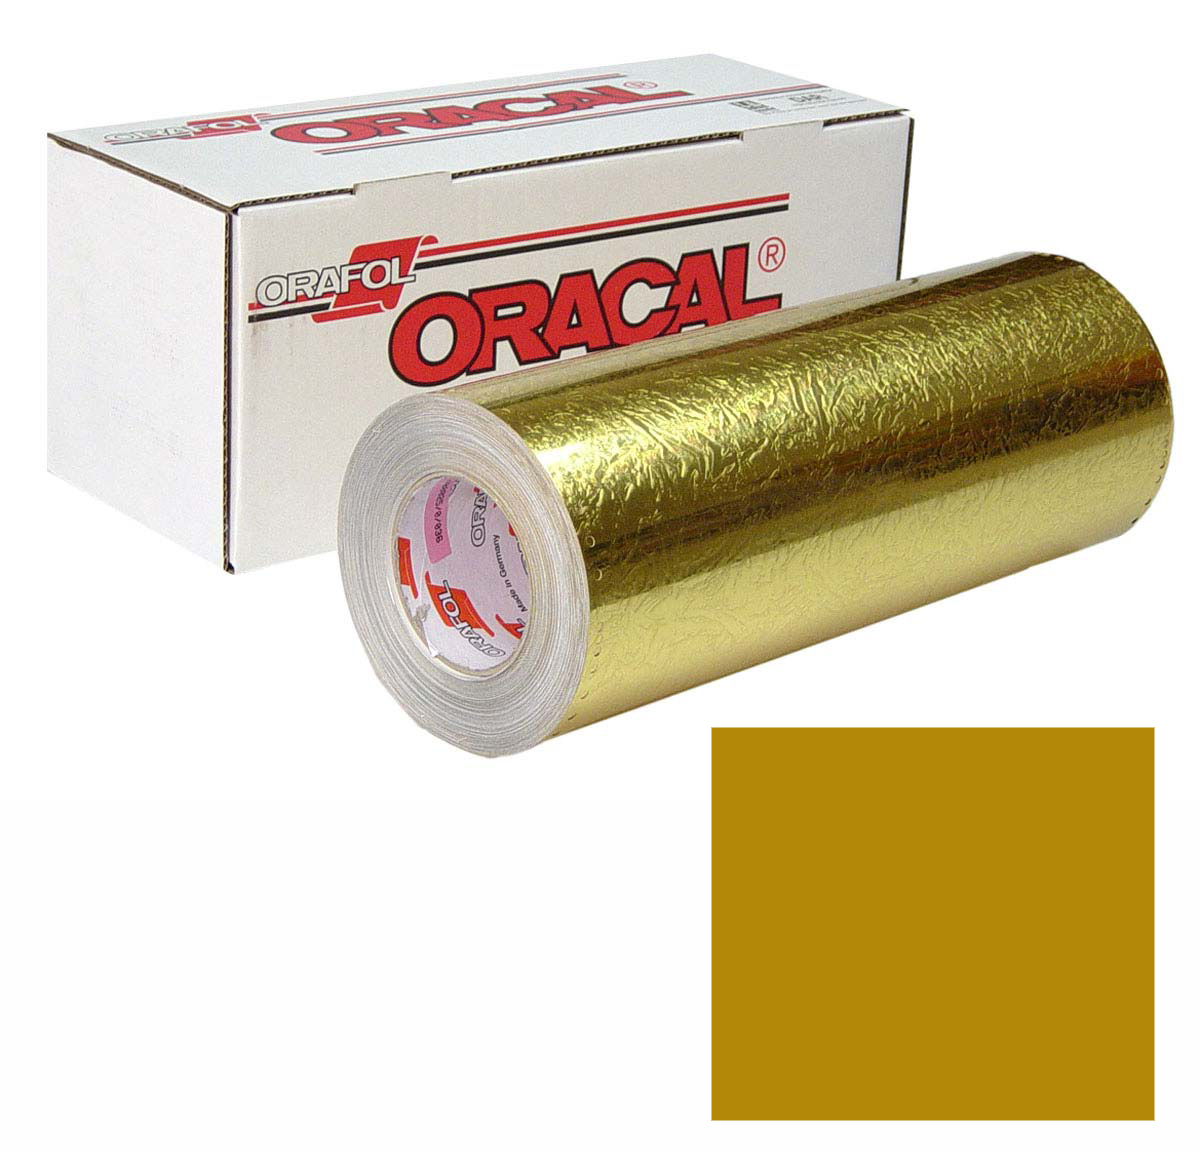 ORACAL 383 Ultraleaf 48In X 50Yd 003-Gold